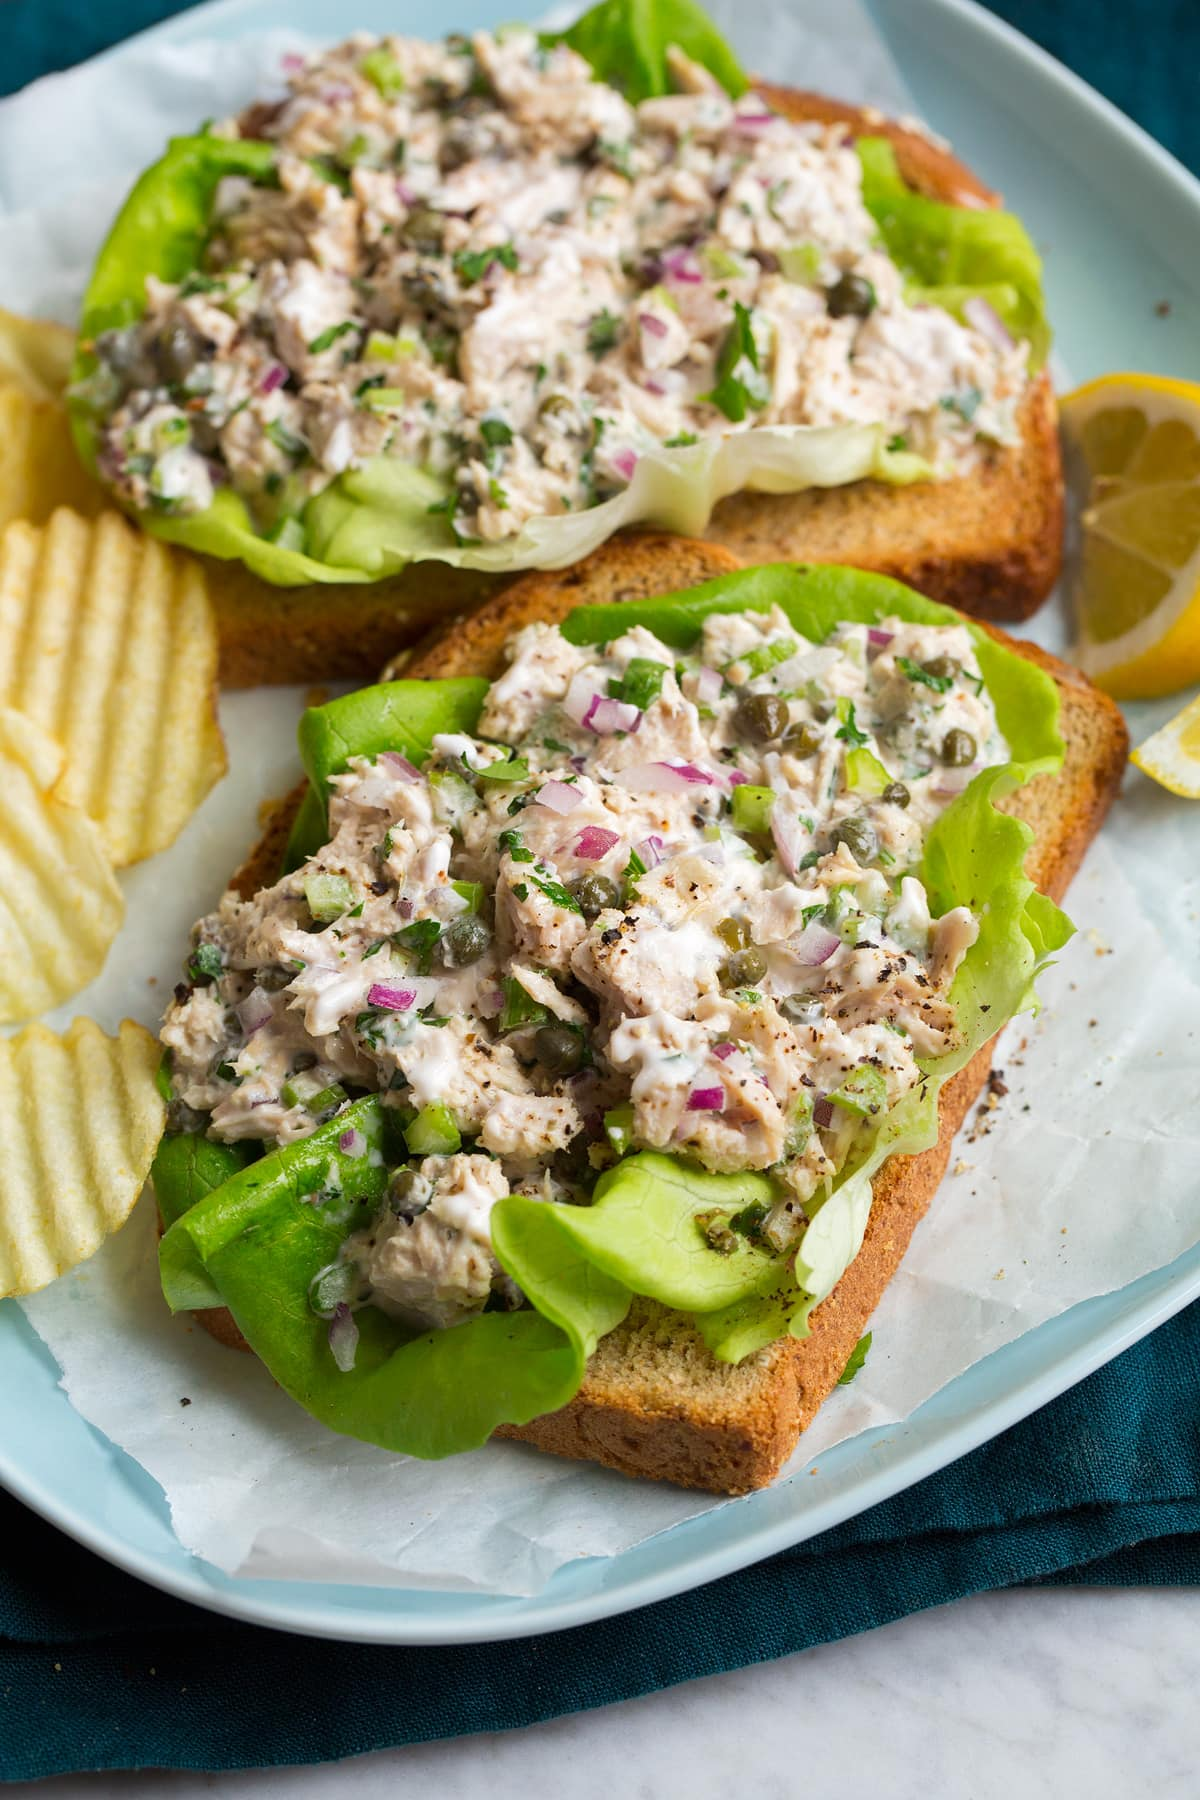 Tuna salad shown on bread slices over lettuce leaves.